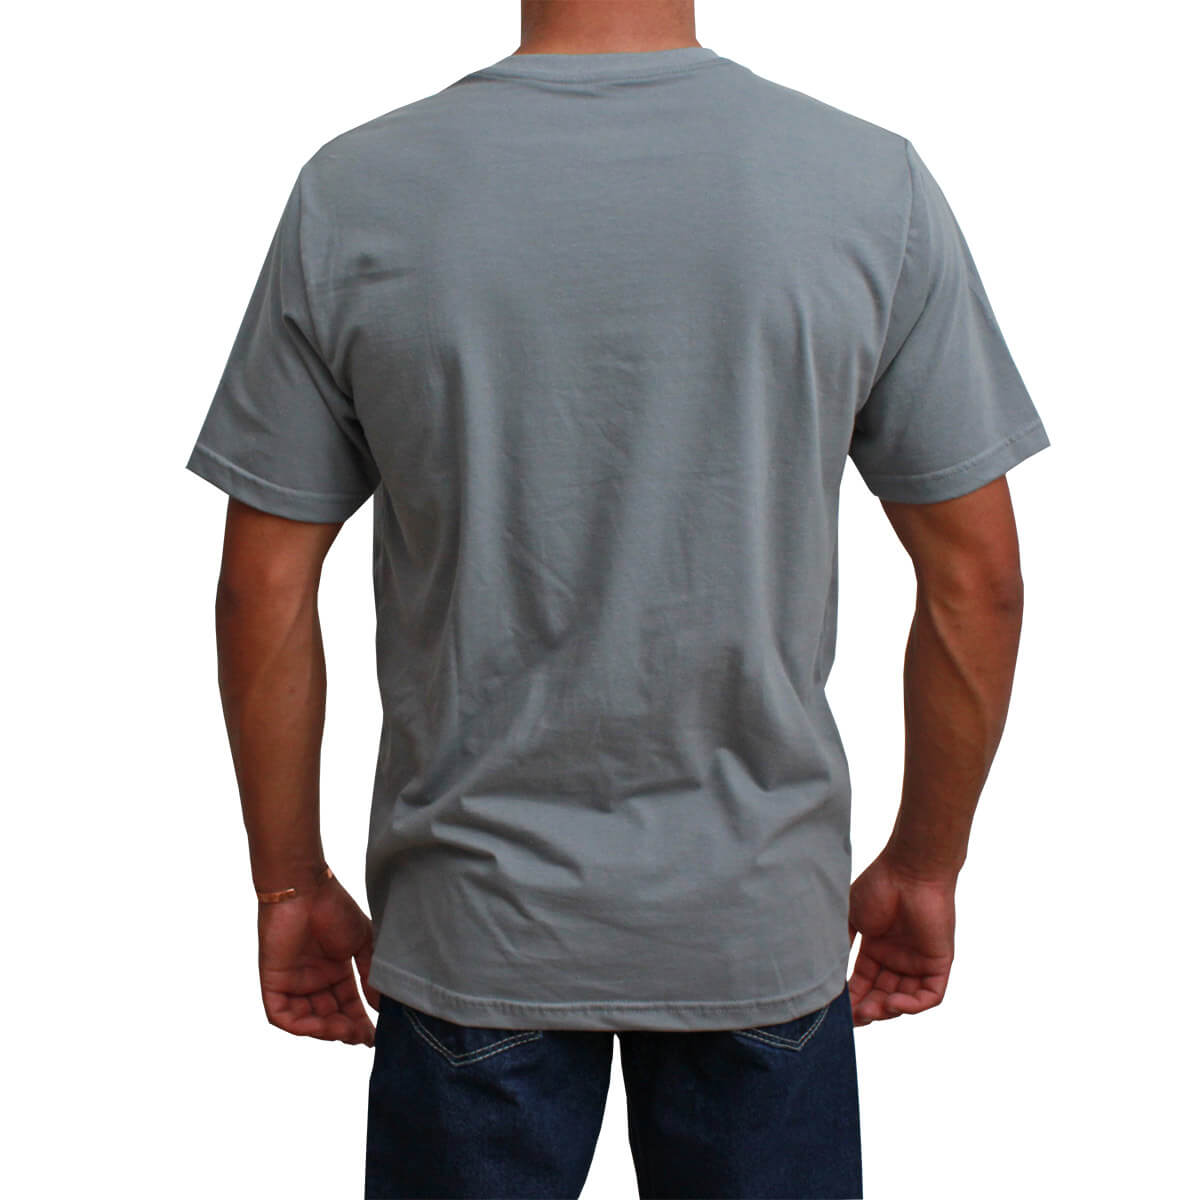 Camiseta Masculina Smith Brothers Cinza Logo Branco